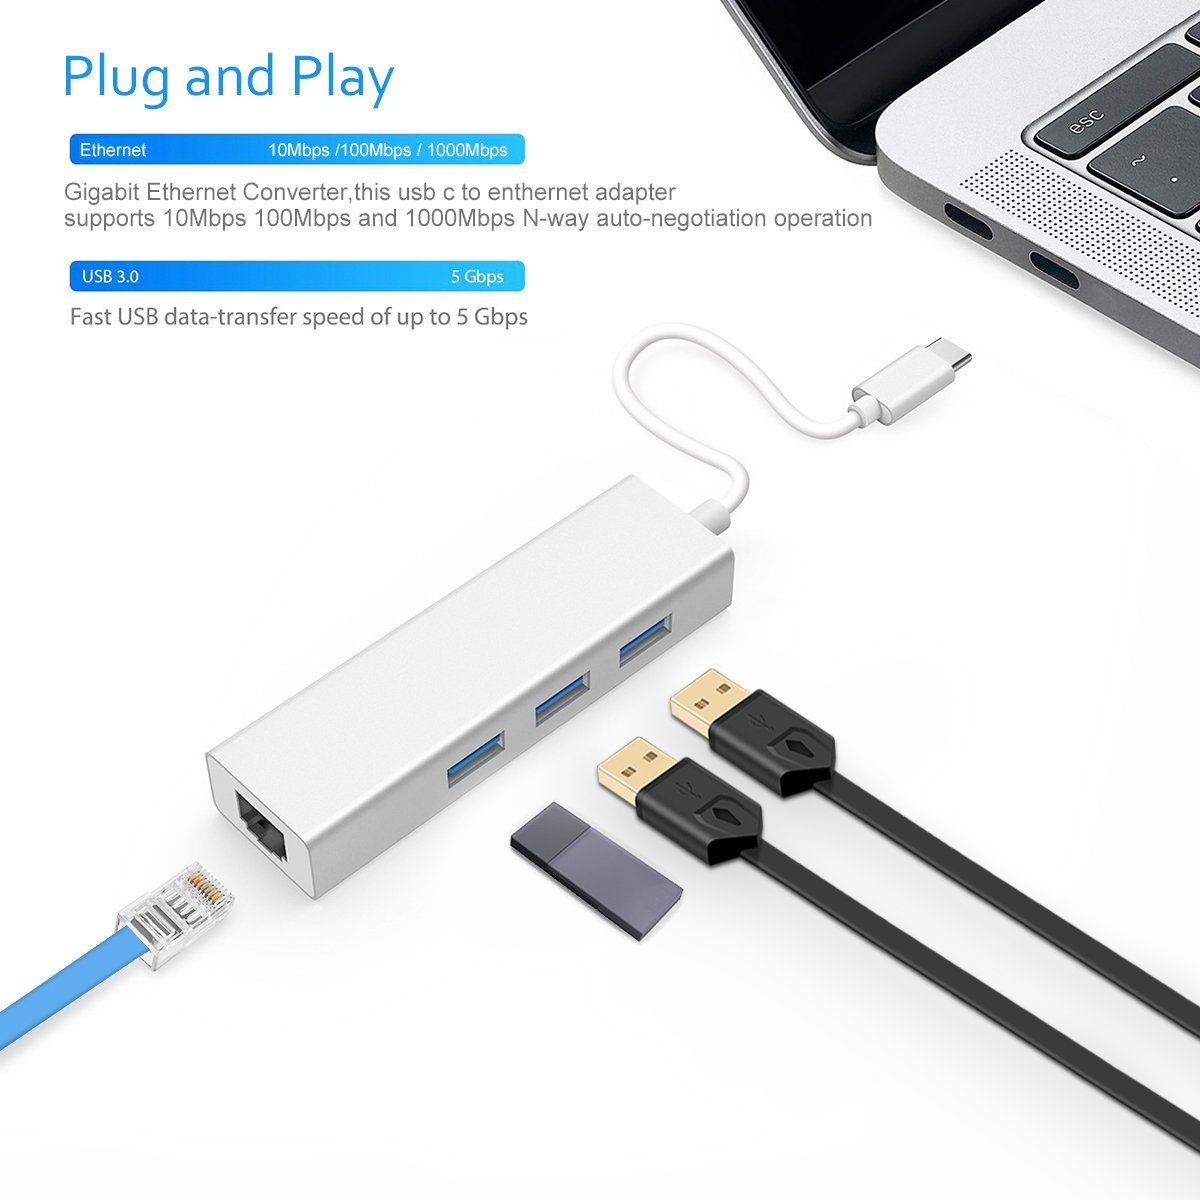 Vacio USB Type C to USB Adapter,3.1 USB C(Thunderbolt 3) to 3 Port USB3.0 Hub with Type-c Female Extension Interface for MacBook / MacBook Pro / Chromebook Pixel